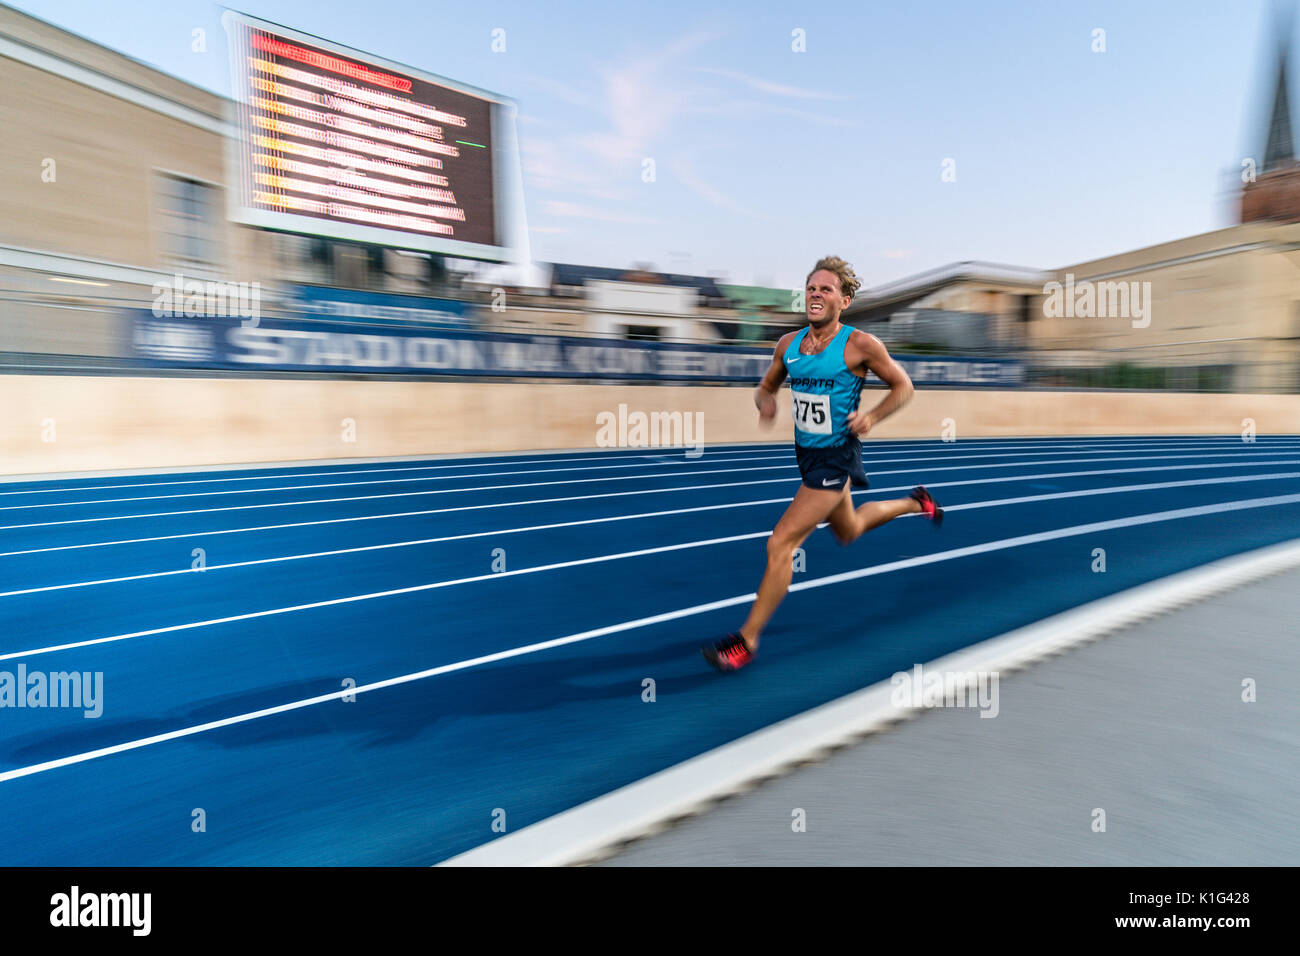 Panning shot of running on the final lap of 5 k track race - Stock Image